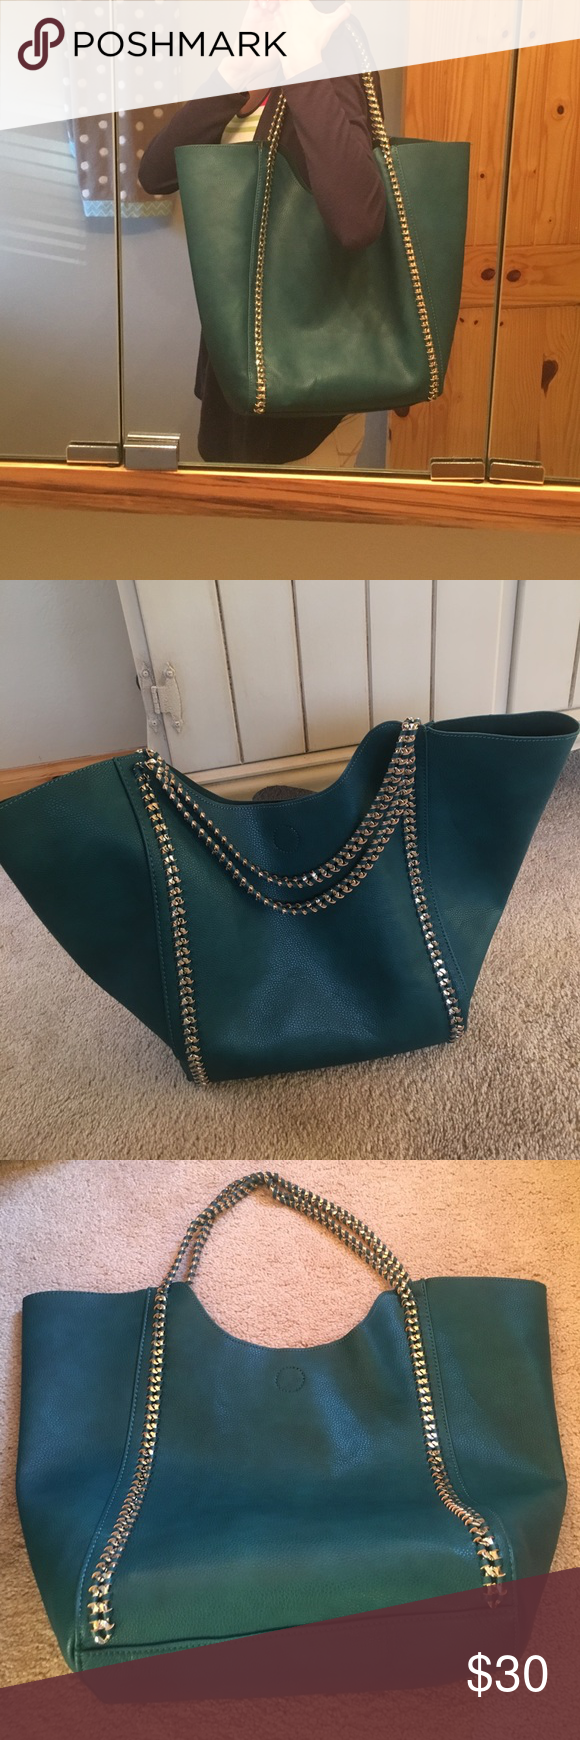 Street Level tote from Stitch Fix This beautiful blue/green tote was purchased from my Stitch Fix box.  Was only used a few times.  Has beautiful chain straps woven through leather.  Comes with a removable smaller pouch perfect for essentials.  It has a magnetic closure to secure the bag.  Very roomy and comfortable bag to wear.  Measures approximately 21 inches across at its widest part, 14 inches high at its widest part and approximately 6 inches wide.  Beautiful pebbles leather tote that…